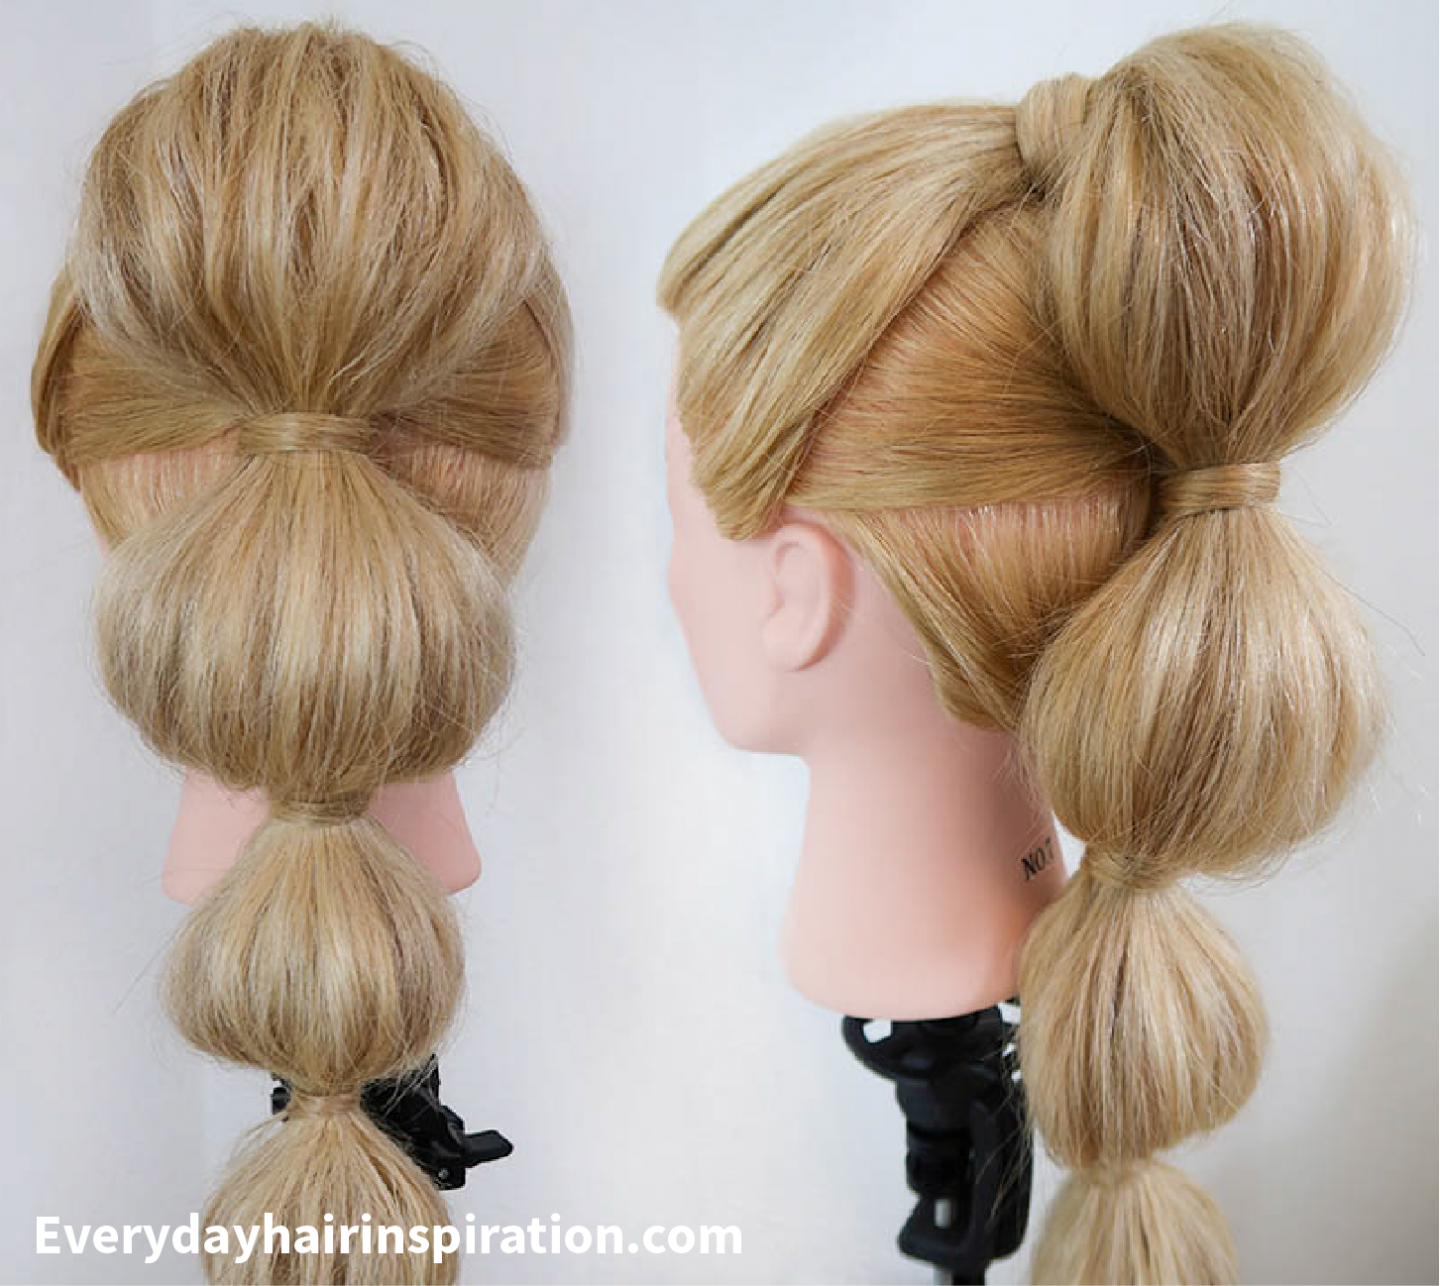 Bubble Ponytail Step By Step Everyday Hair Inspiration